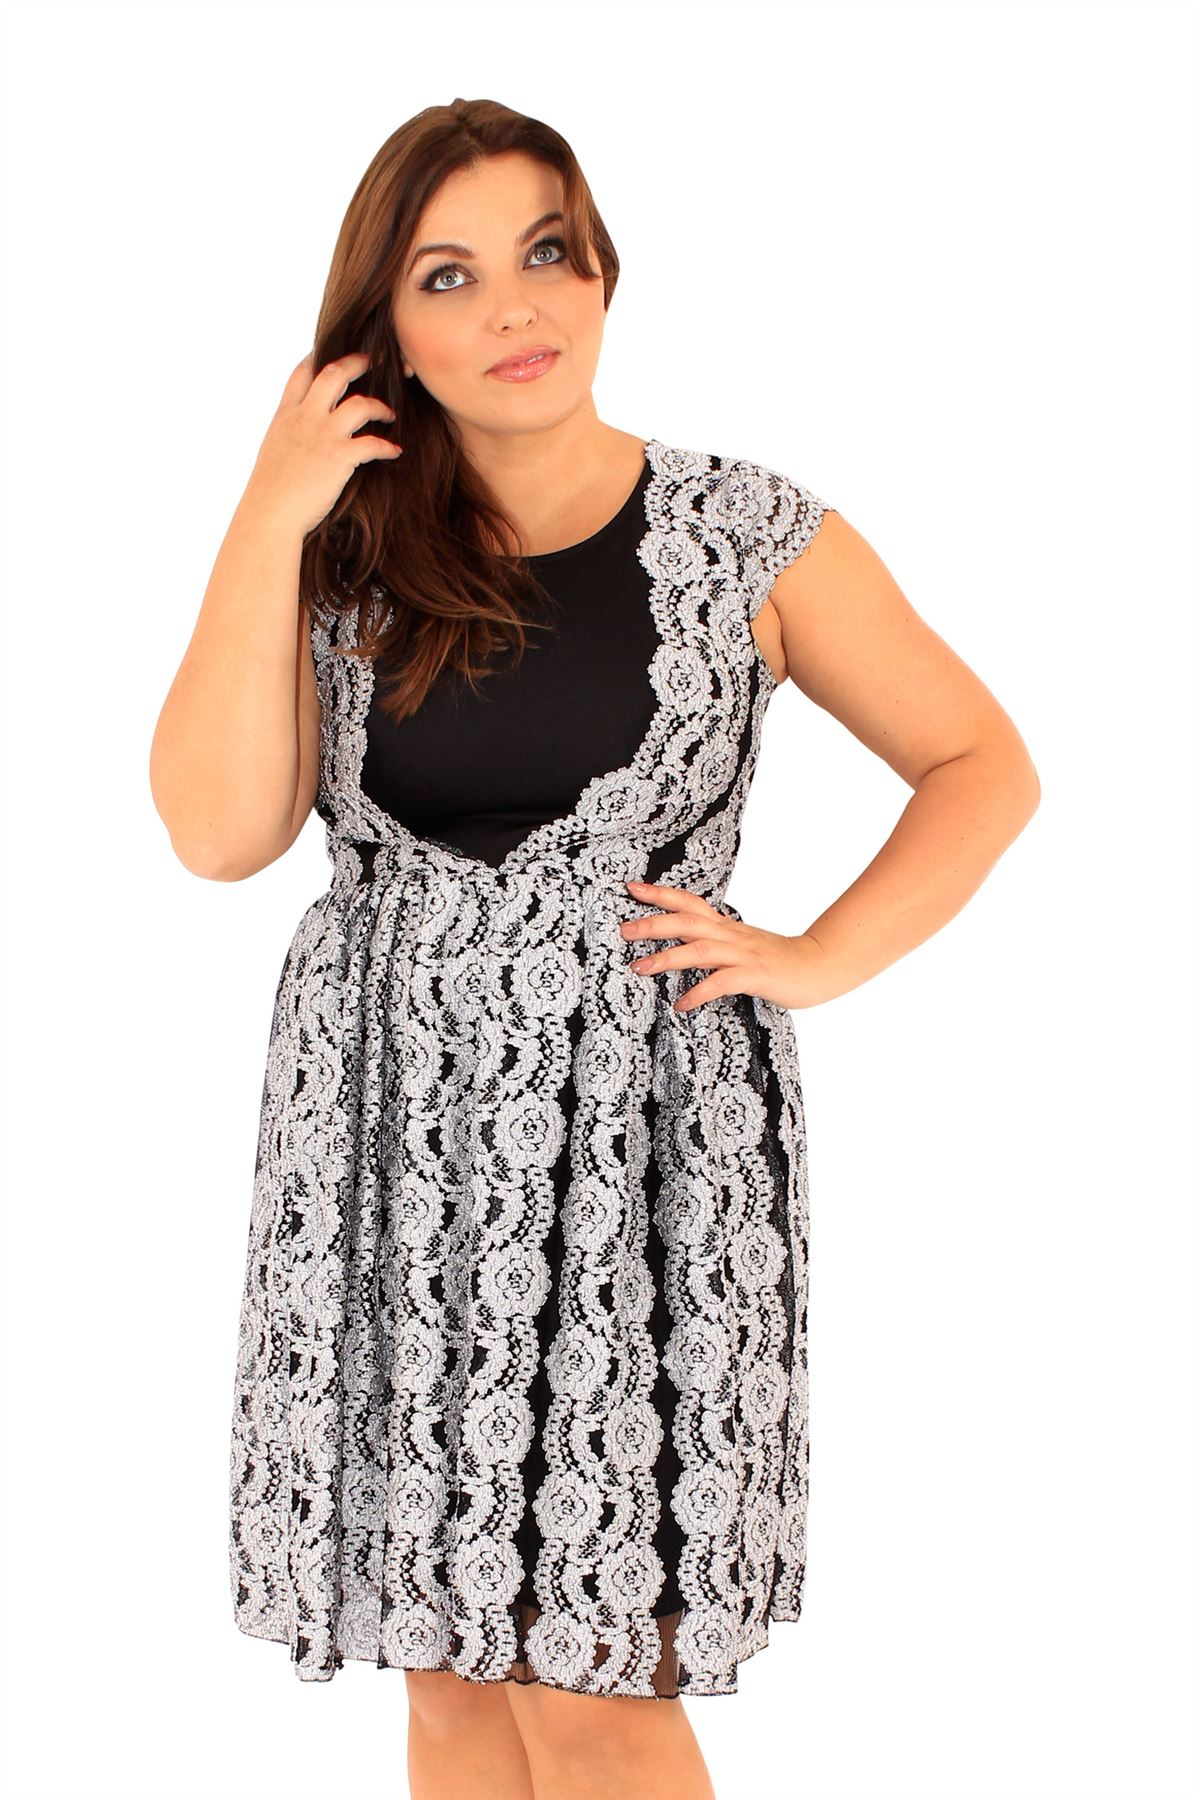 Free shipping and returns on dresses for women at dexterminduwi.ga Browse bridesmaids, cocktail & party, maxi, vacation, wedding guest and more in the latest colors and prints. Shop by length, style, color and more from brands like Eliza J, Topshop, Leith, Gal Meets Glam, & Free People.